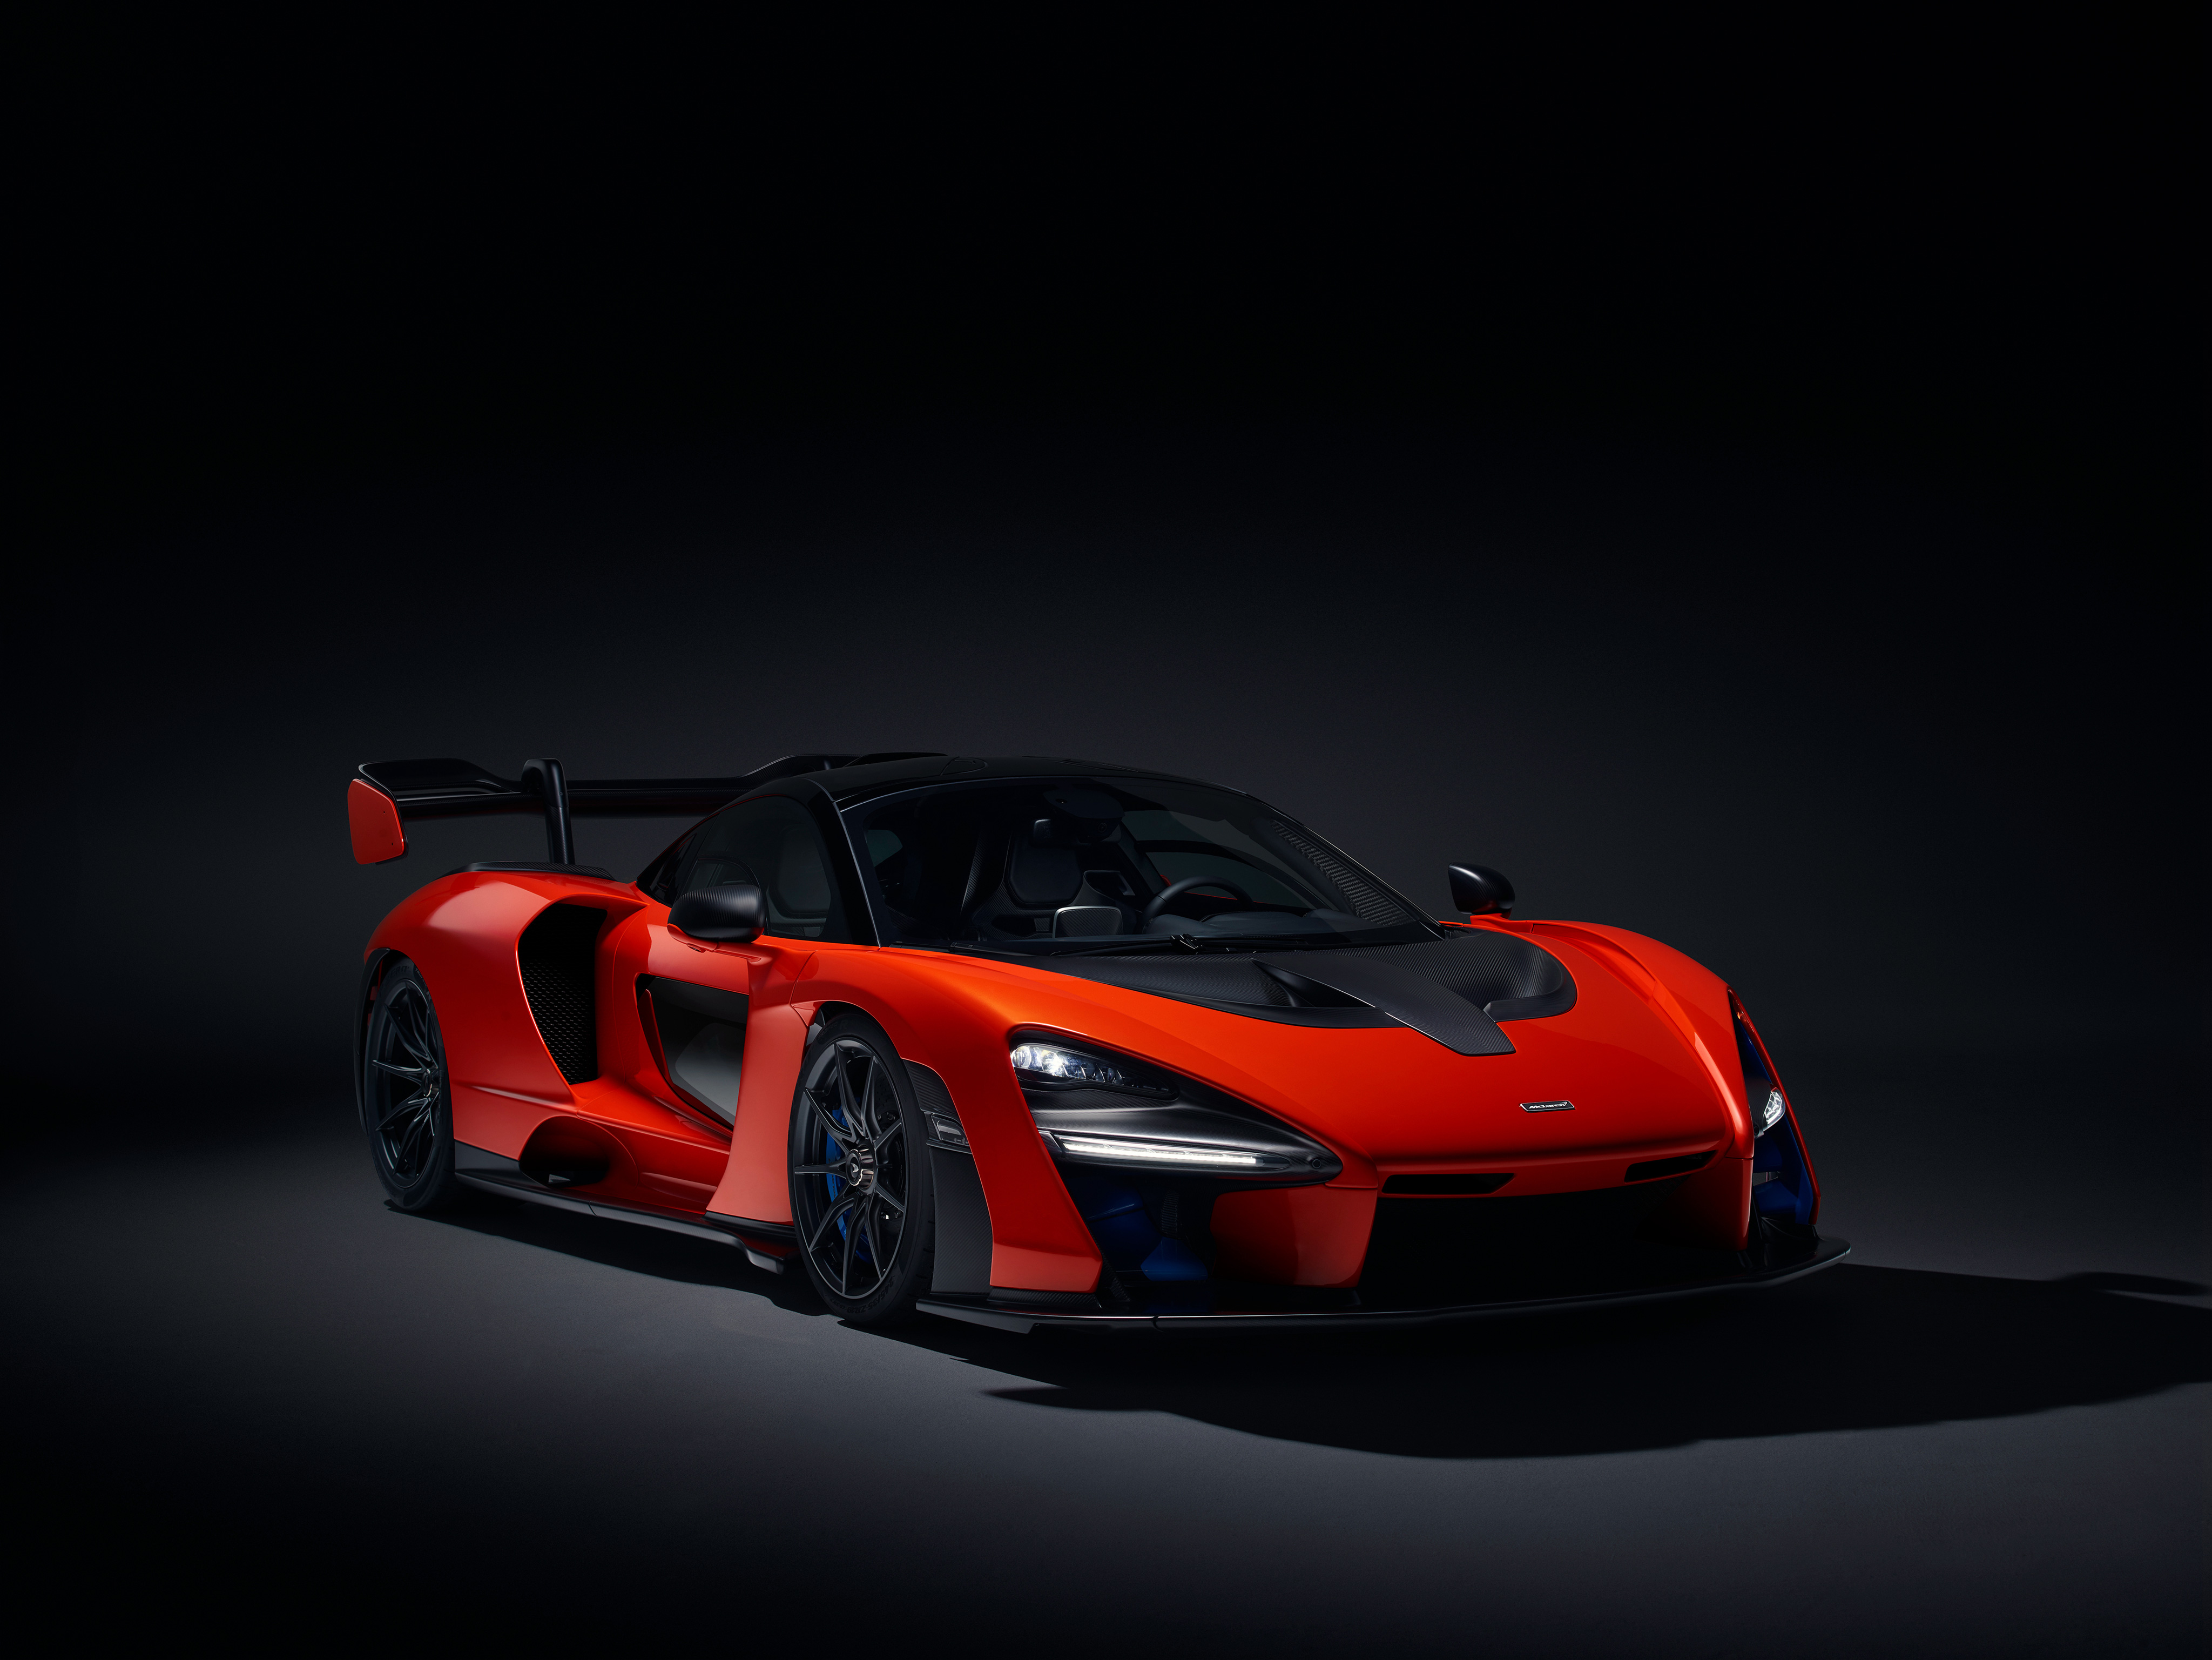 Mclaren Senna Hd Cars 4k Wallpapers Images Backgrounds Photos And Pictures